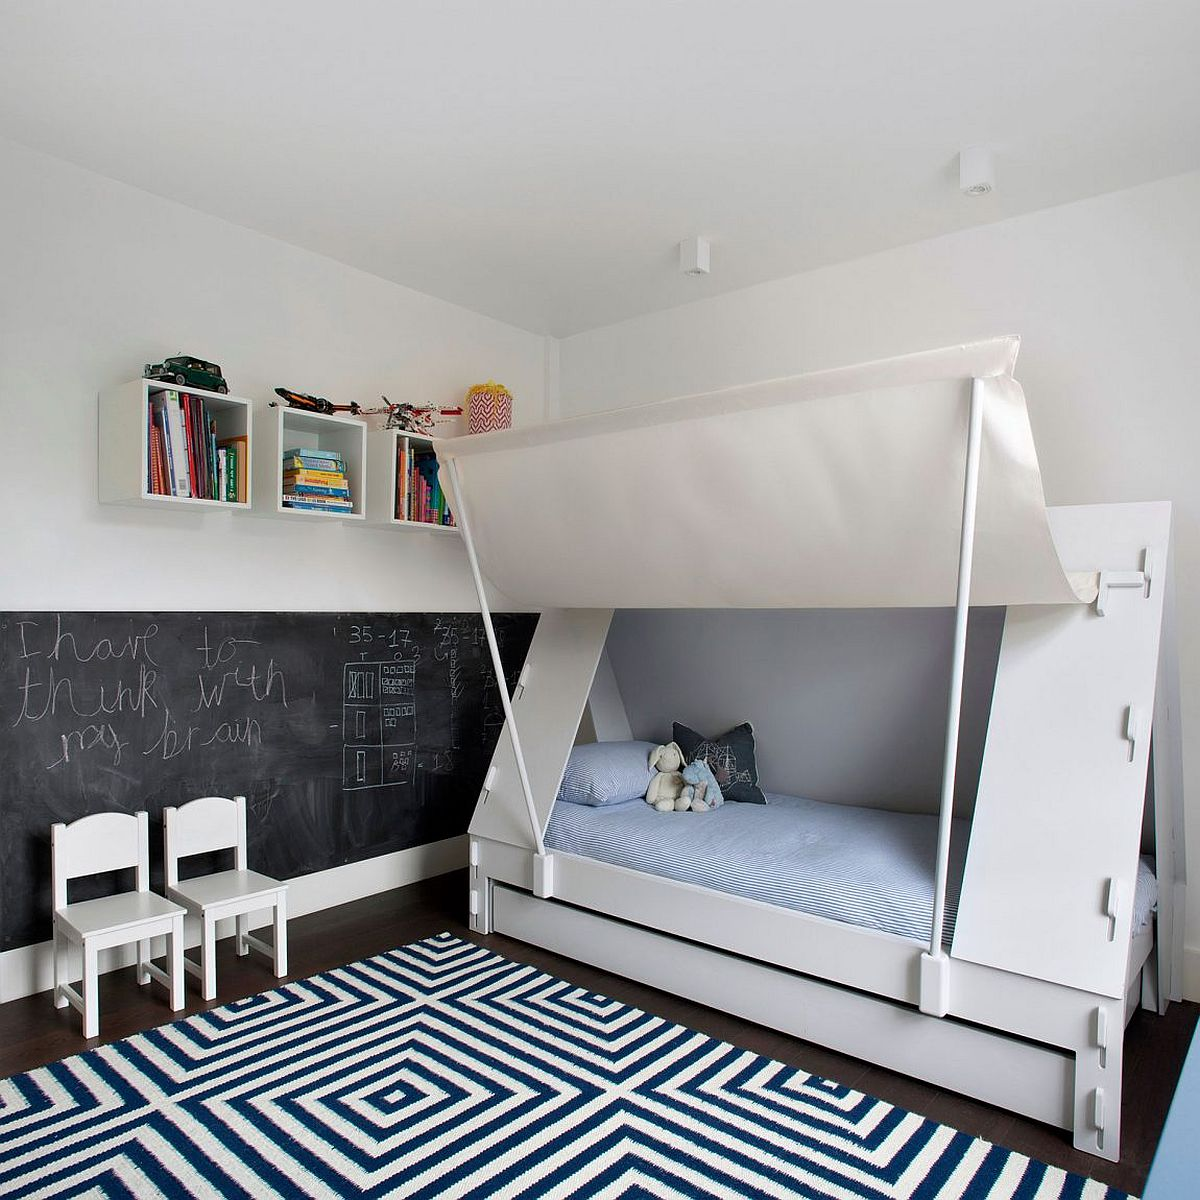 Kids' bedroom with chalkboard wall and innovative bed design